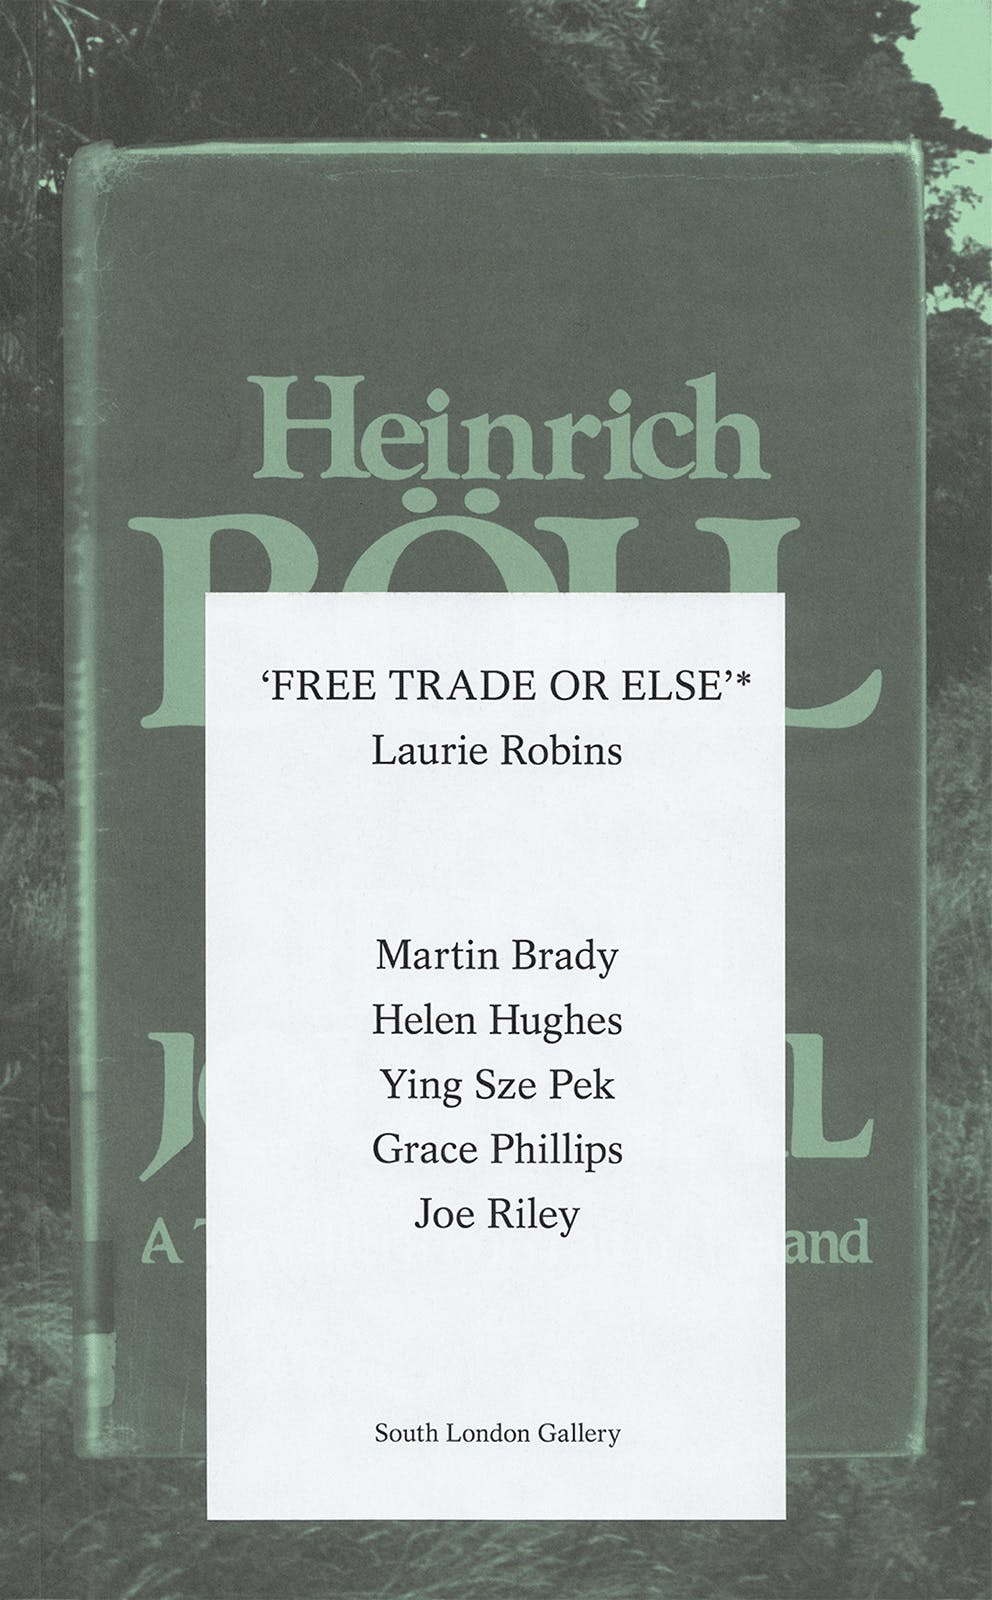 Laurie Robins, 'FREE TRADE OR ELSE'*, South London Gallery, Publication, Graphic Design by Wolfe Hall